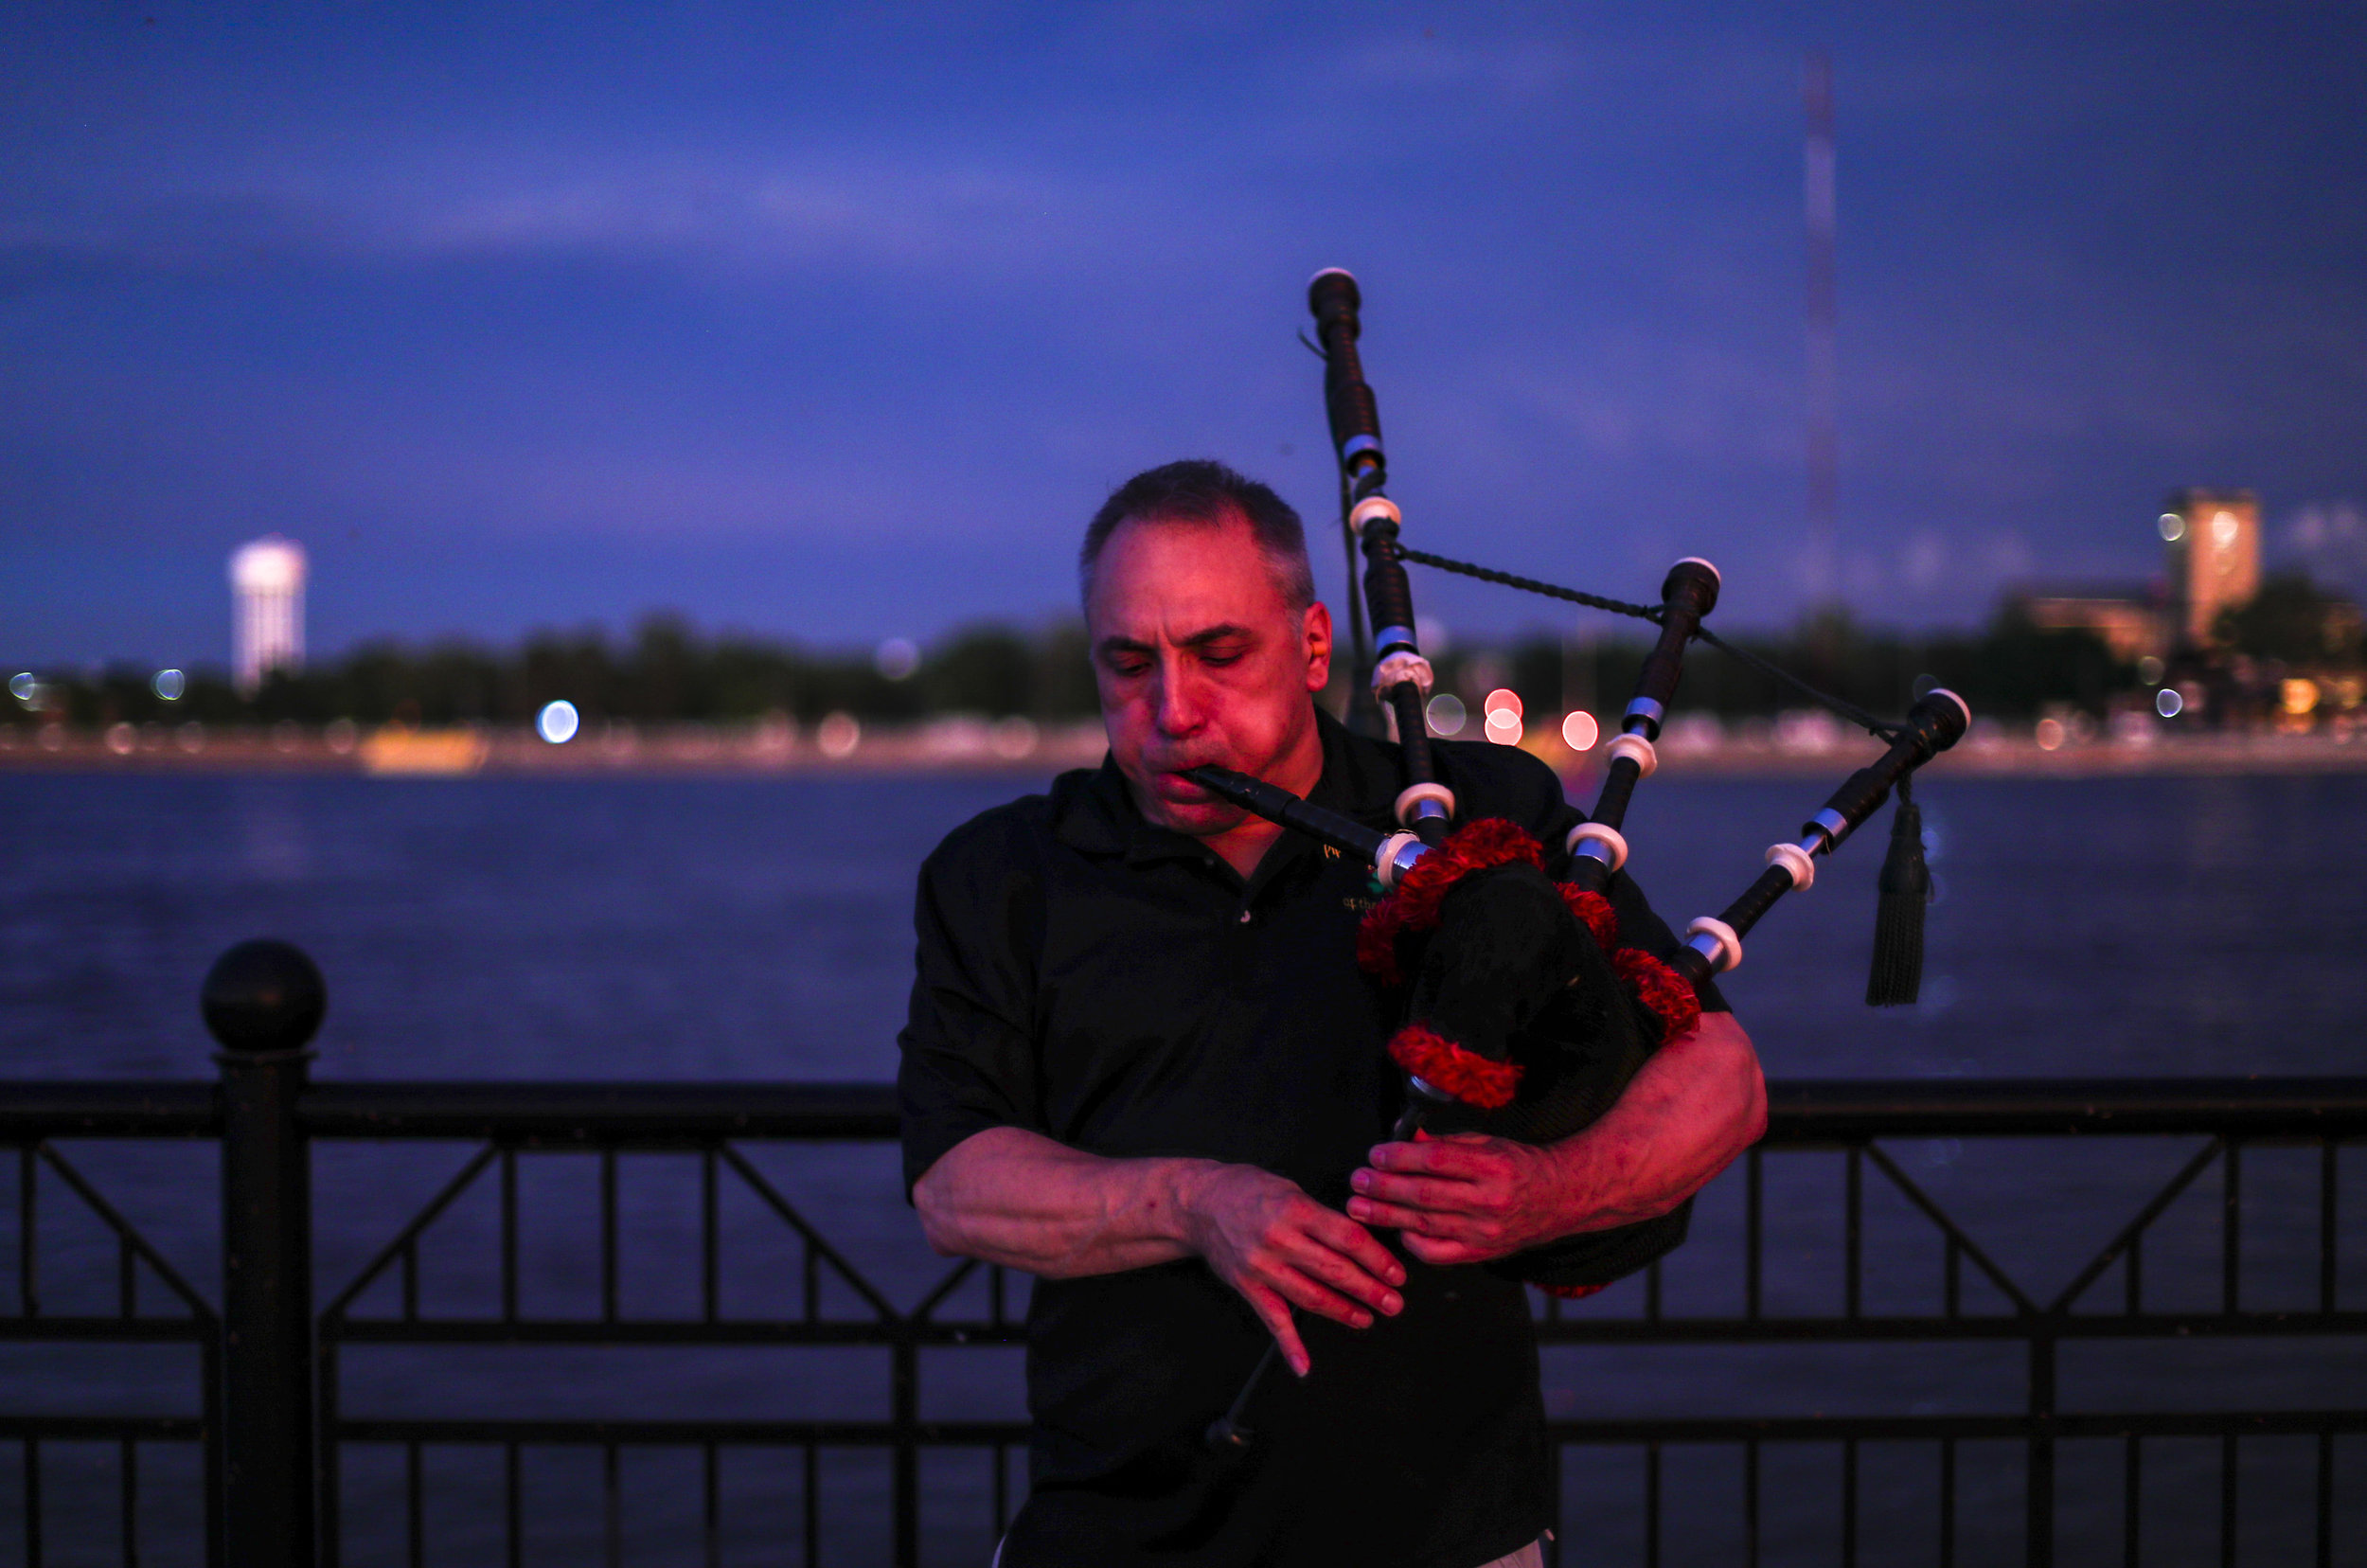 David Cohen of Davenport takes to the Mississippi riverfront to practice playing his bagpipes as the sun sets in Davenport, Tuesday, June 25, 2019.